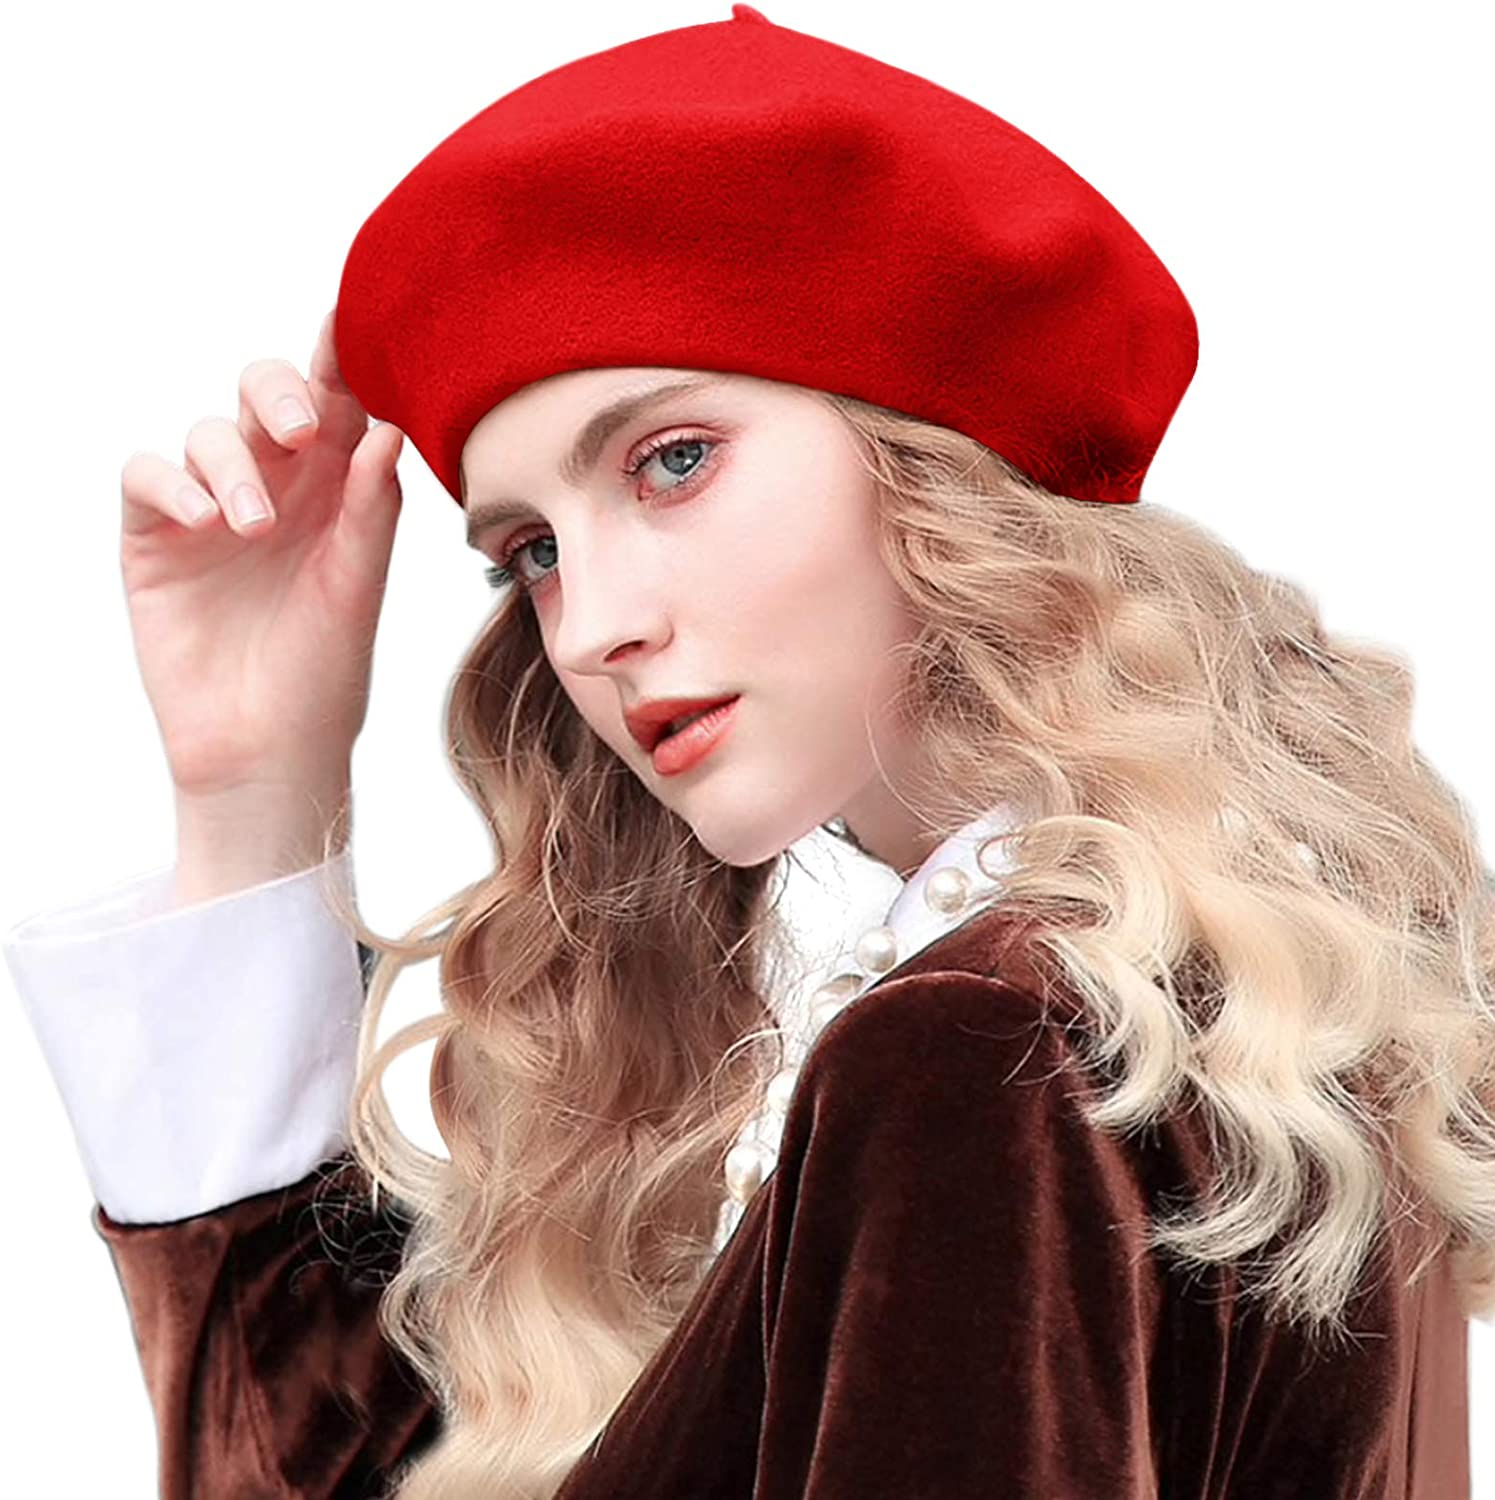 French Beret,Lightweight Casual Classic Wool Beret Solid Color Womens Beret Cap Hat